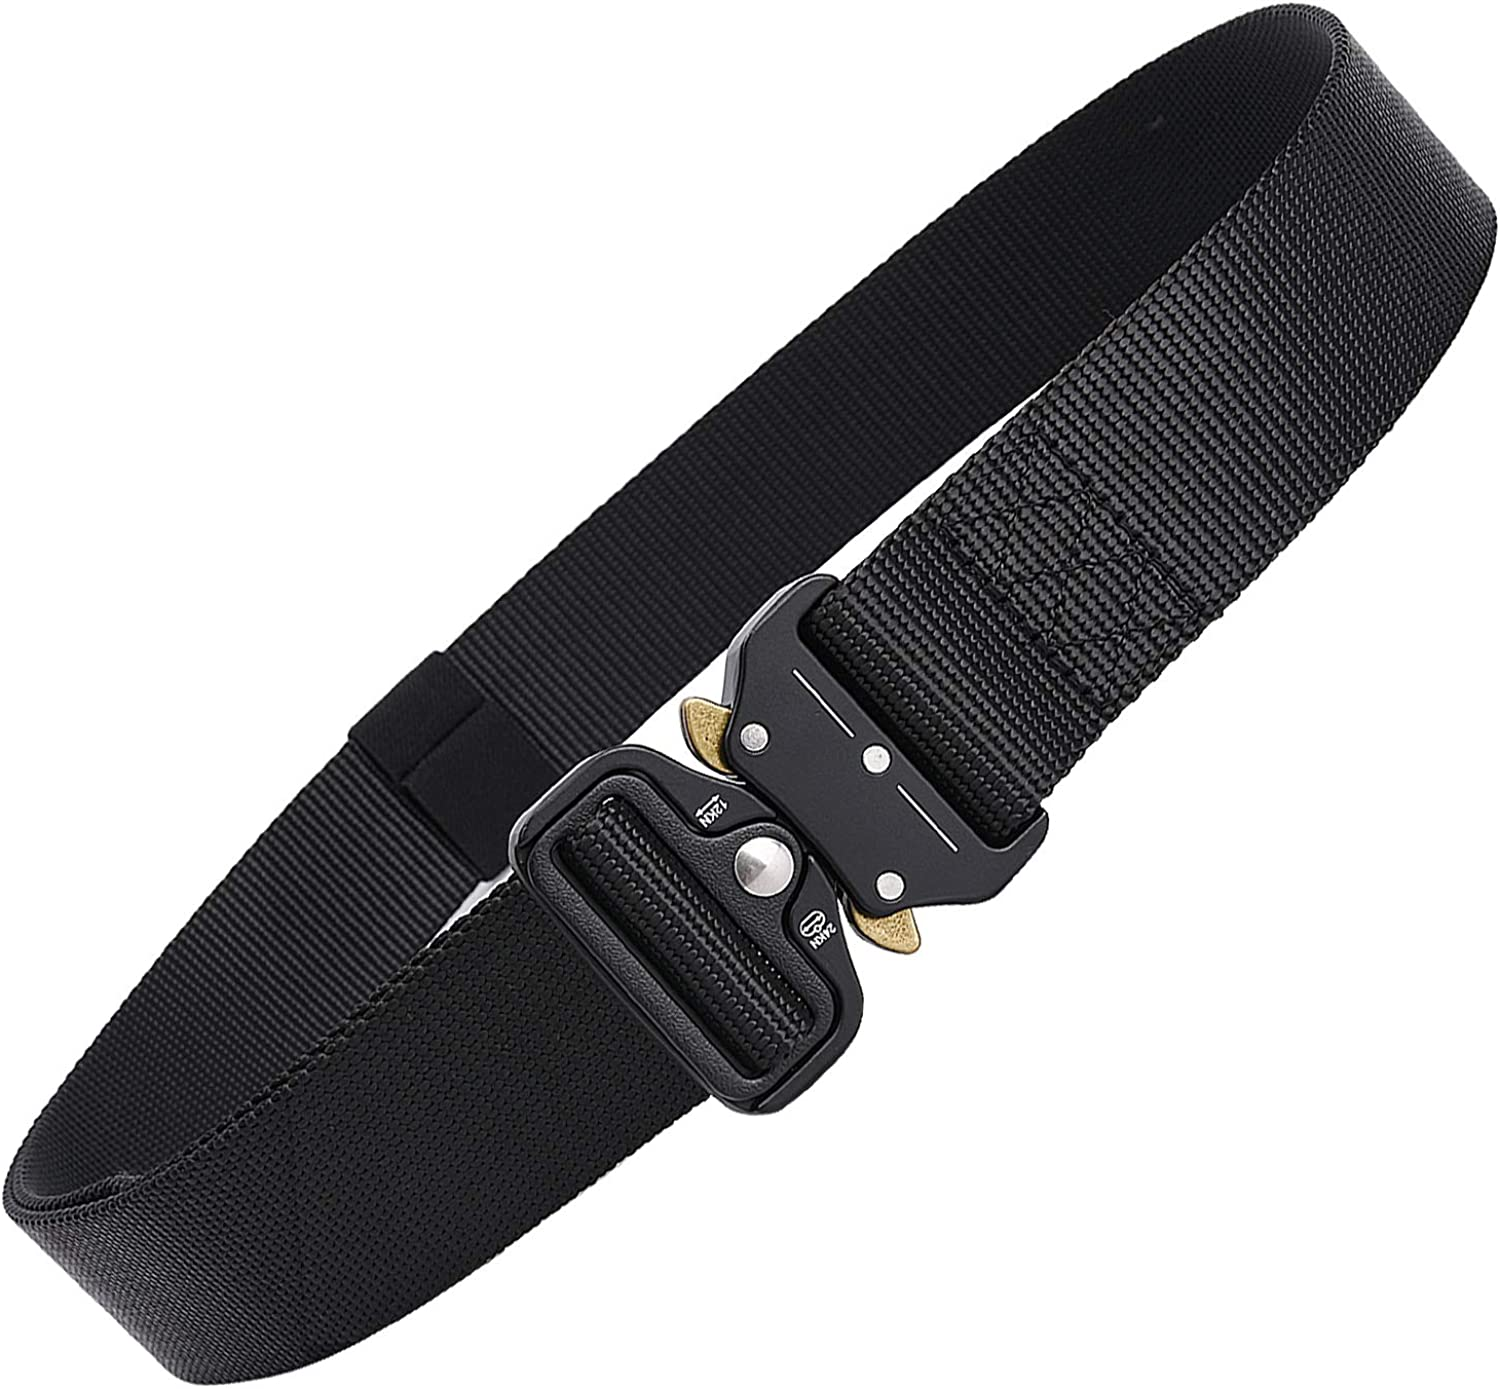 TOBWOLF Military Tactical Belt, 1.5  Wide Heavy Duty Waist Belt for Men, Adjustable Nylon Casual Webbing Riggers with Medal Buckle